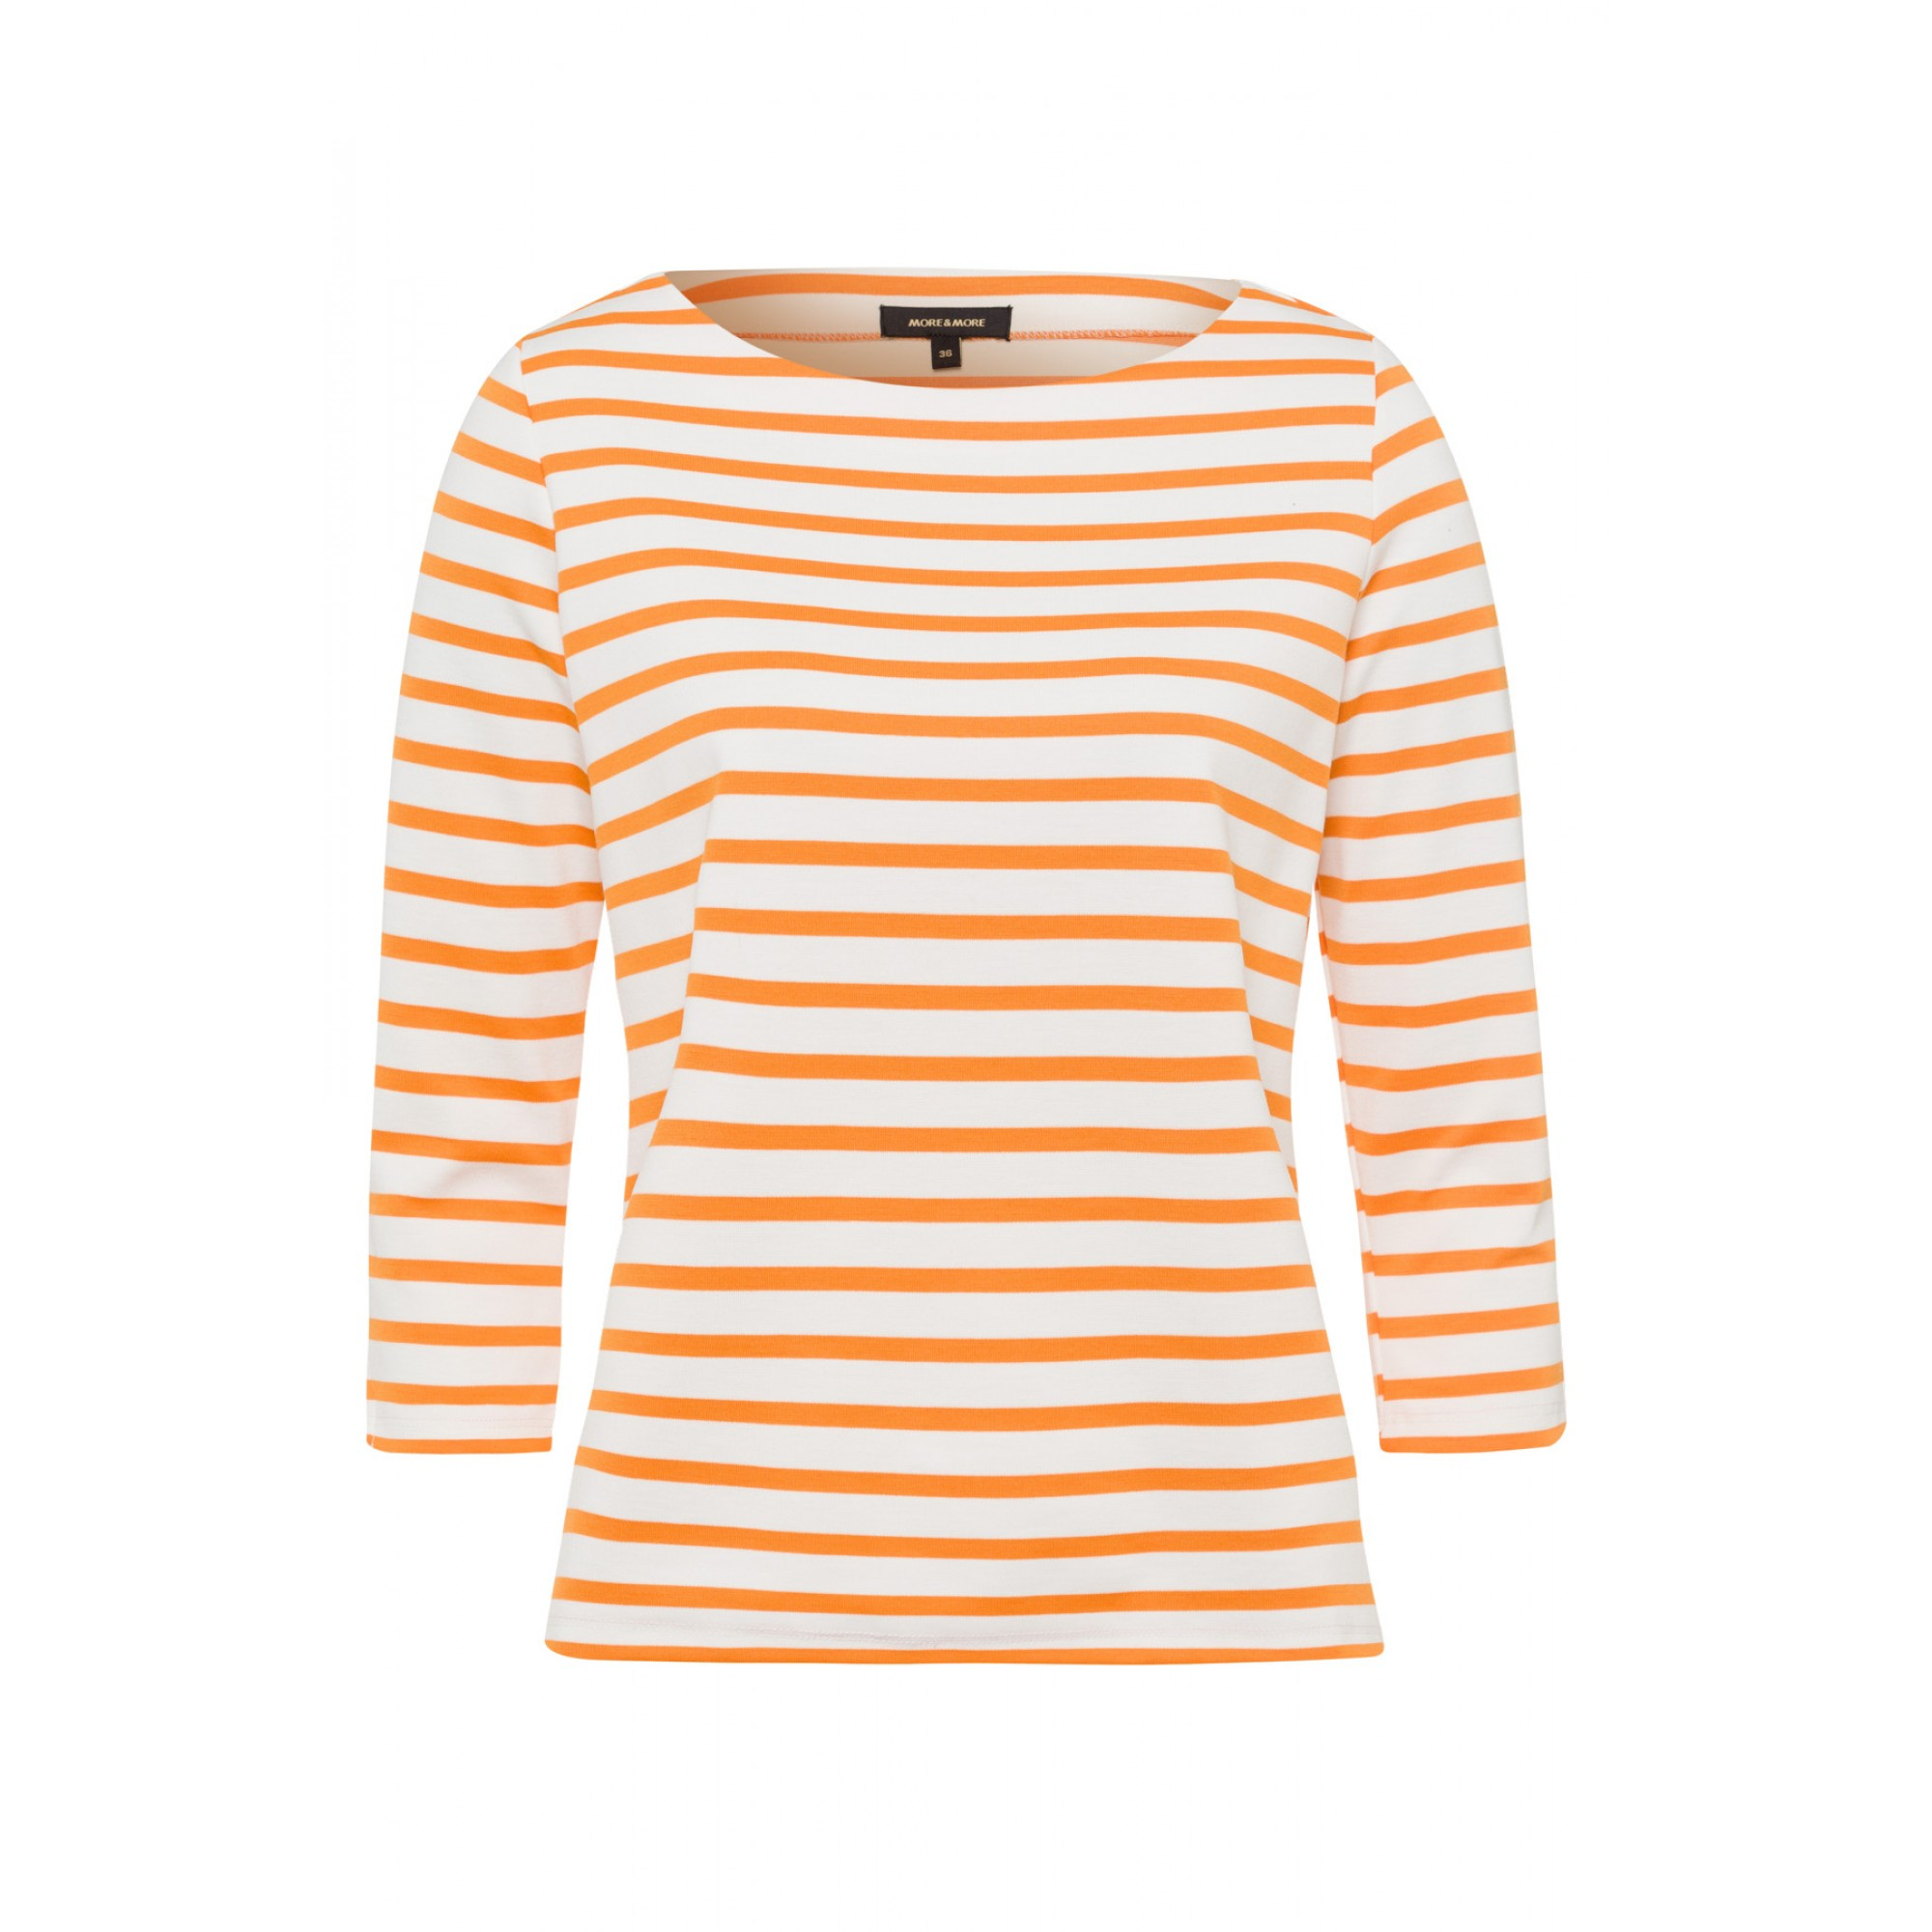 Ringelshirt, orange/ecru 01960064-2420 1